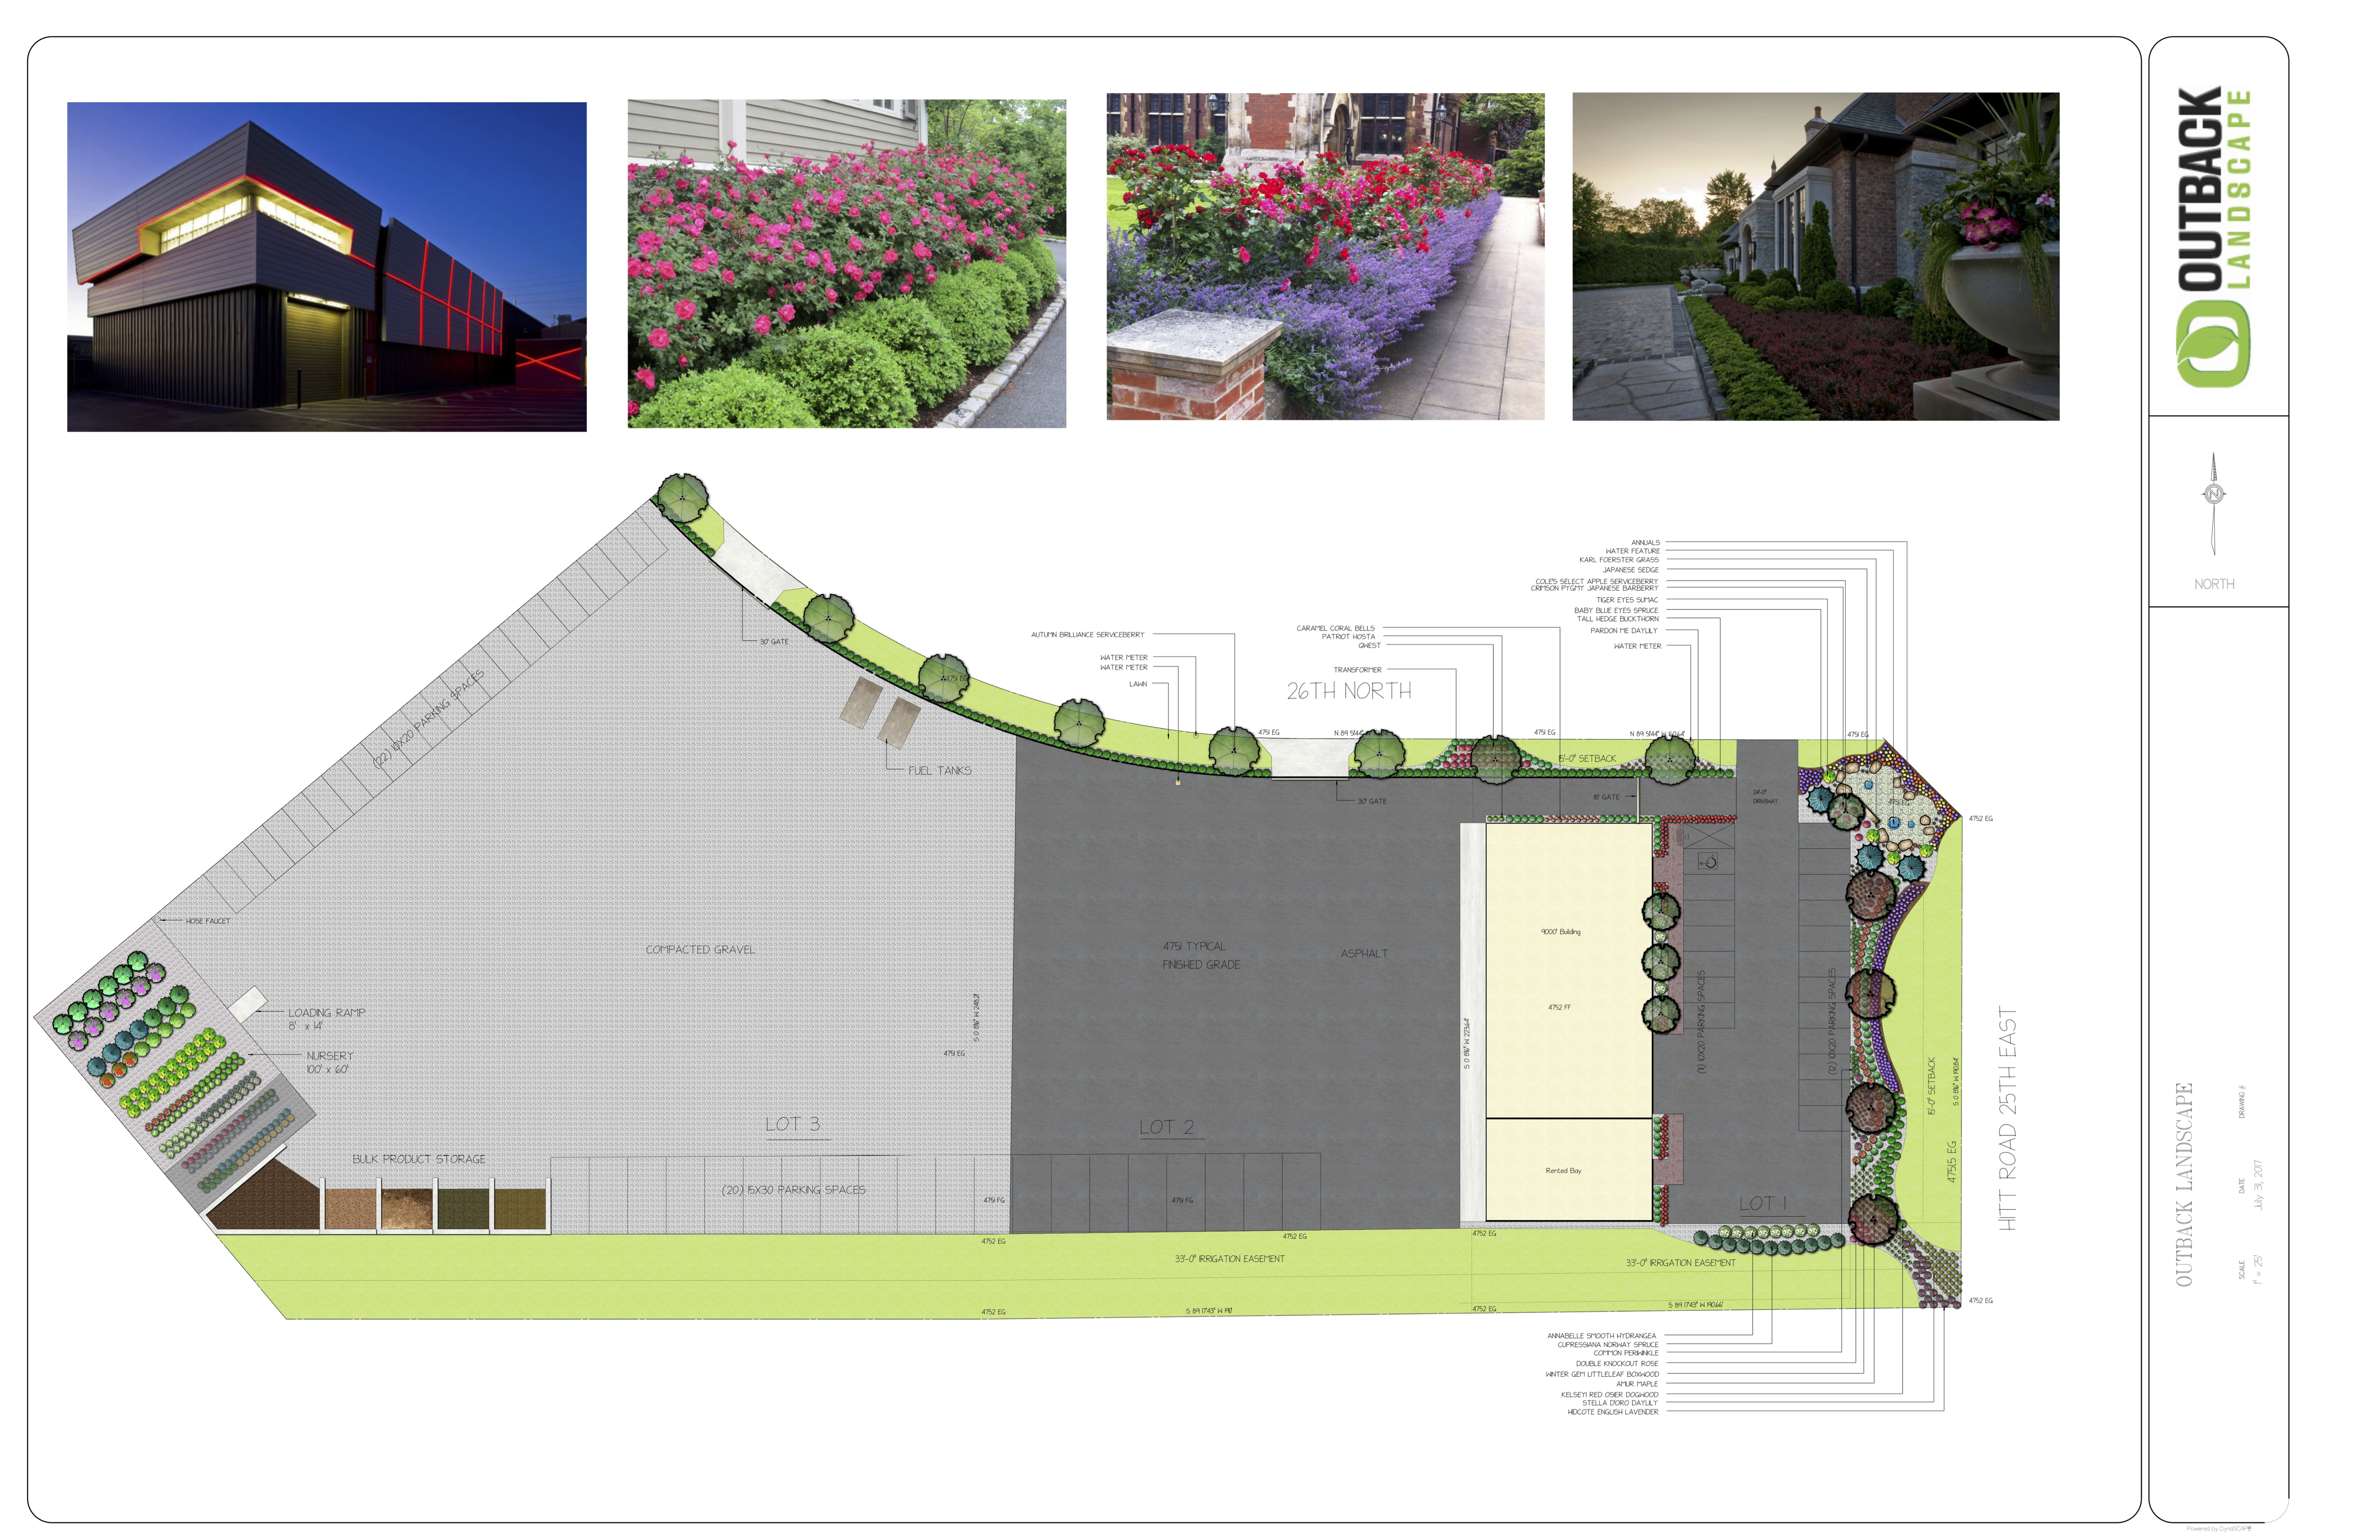 Outback Landscaping design and photos